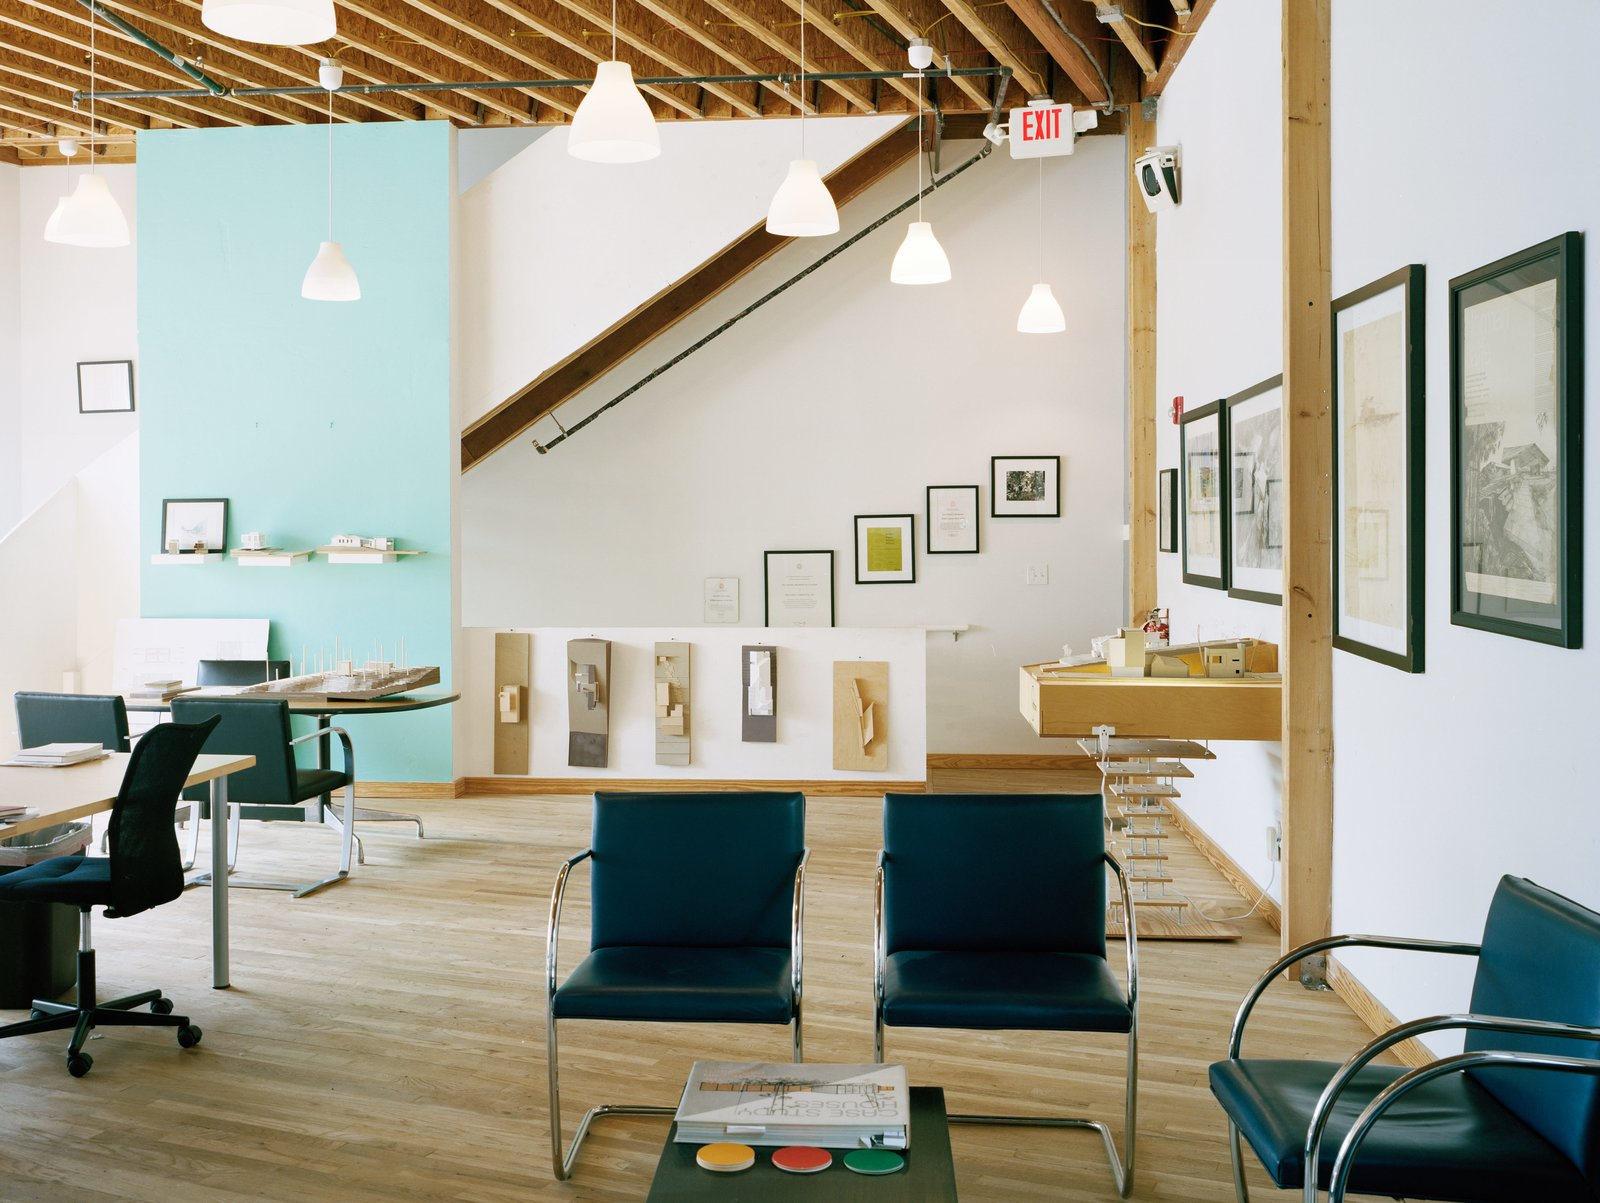 """Living Room, Chair, Coffee Tables, Console Tables, Light Hardwood Floor, Ceiling Lighting, and Pendant Lighting """"A building can have far greater impact than the space it stands in.""""—William Carpenter, architect and resident  Photo 2 of 12 in A Home, Studio, and Gallery Support a Growing Art Scene in Georgia"""